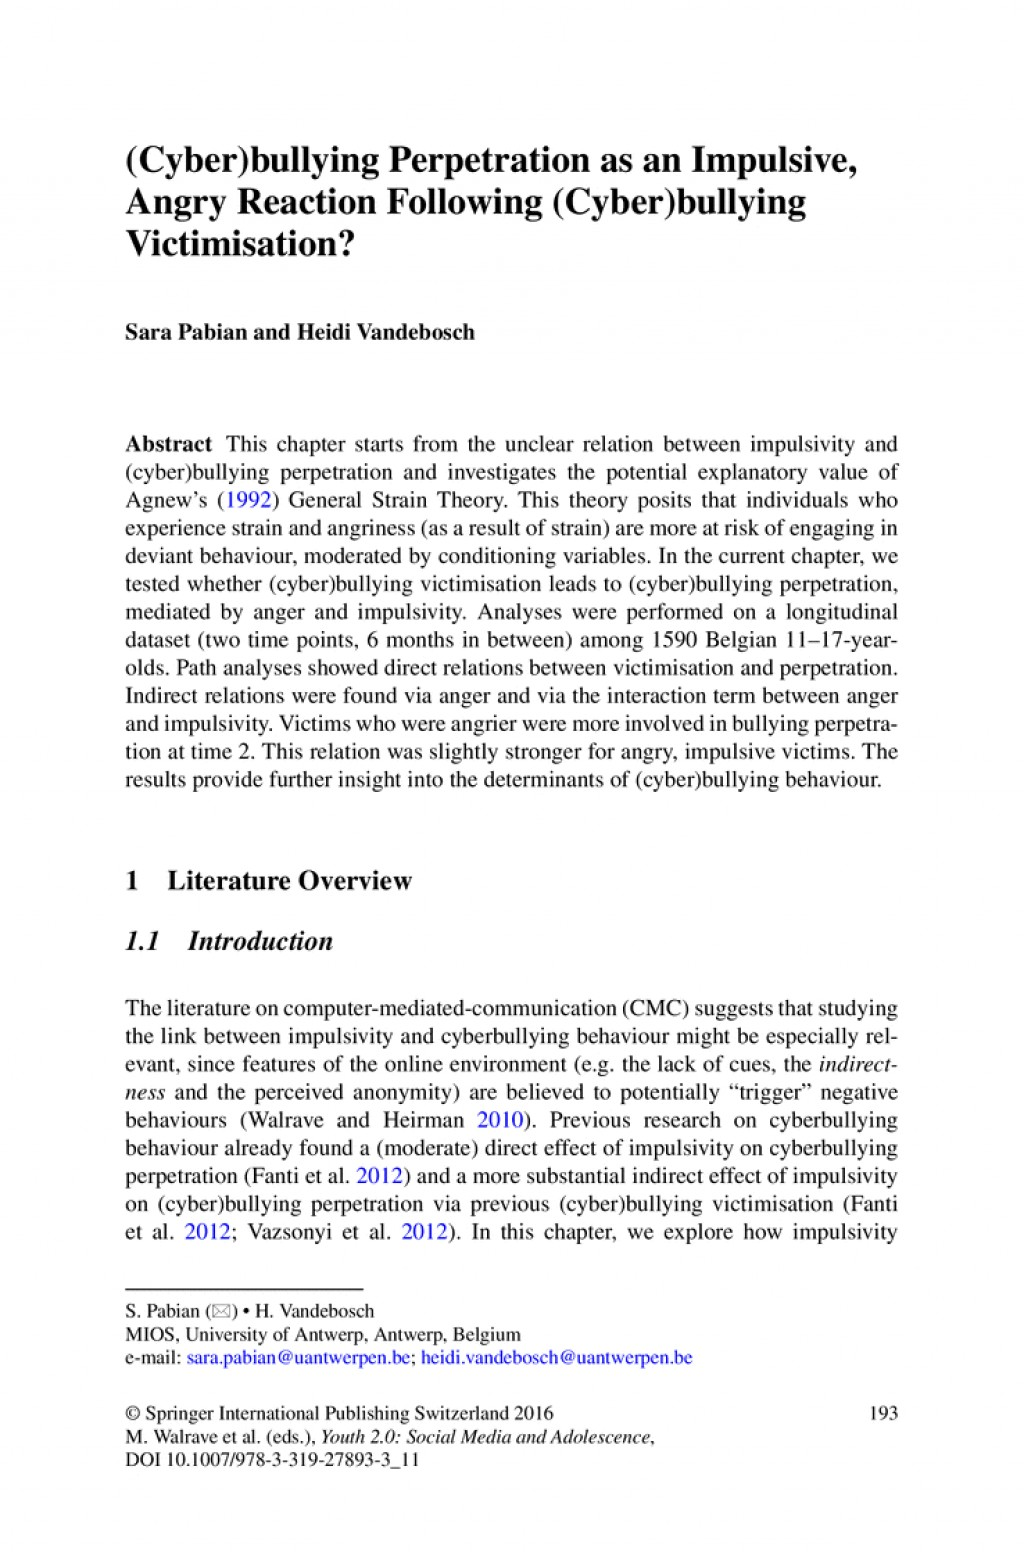 019 Conclusion For Research Paper About Social Media Bullying Essays Cyberbullying Cover Awful Large